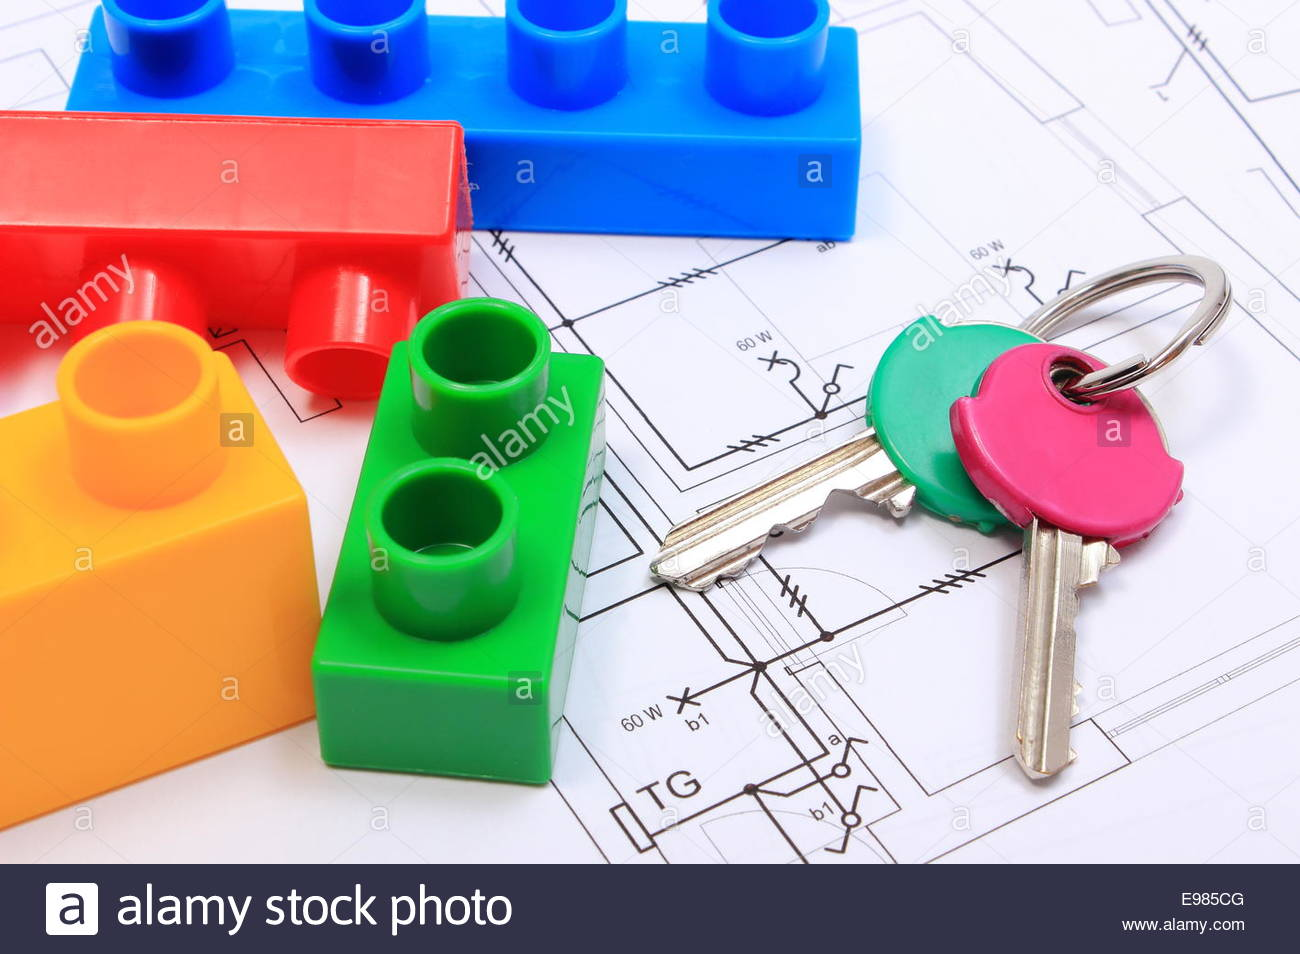 1300x954 Closeup Of Home Keys And Heap Of Plastic Colorful Building Blocks